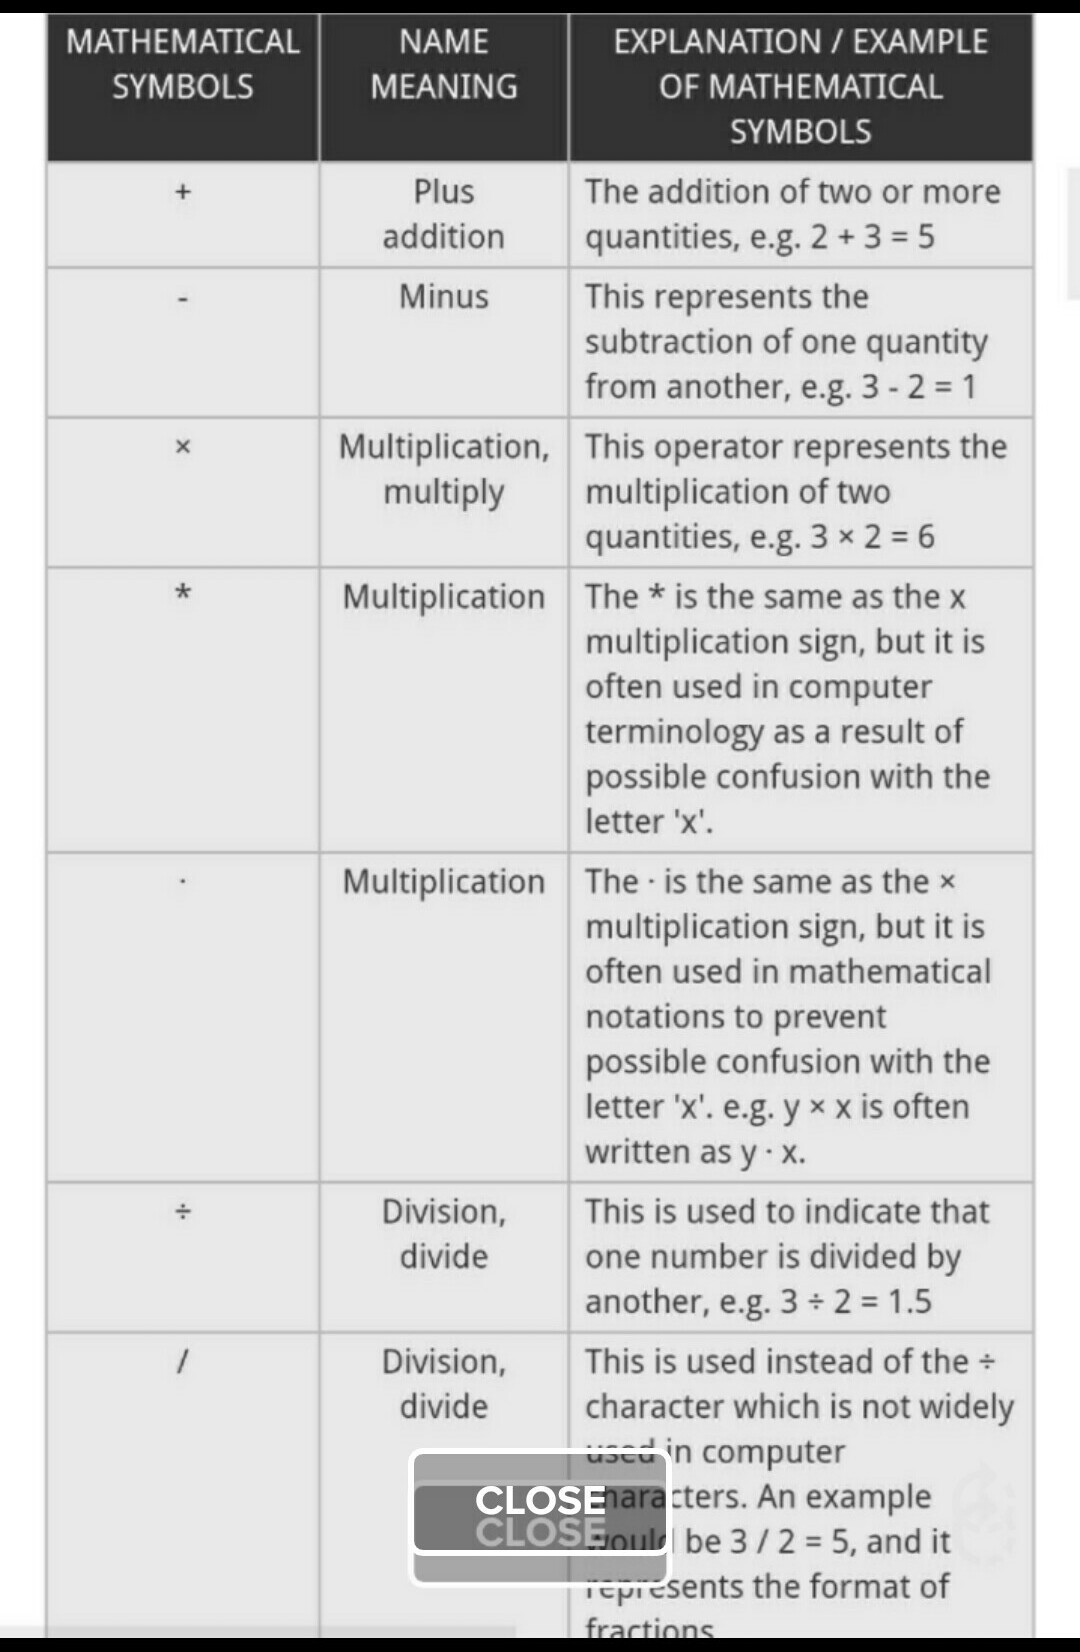 10 New Mathematical Symbols With Their Origin Meaning And Their